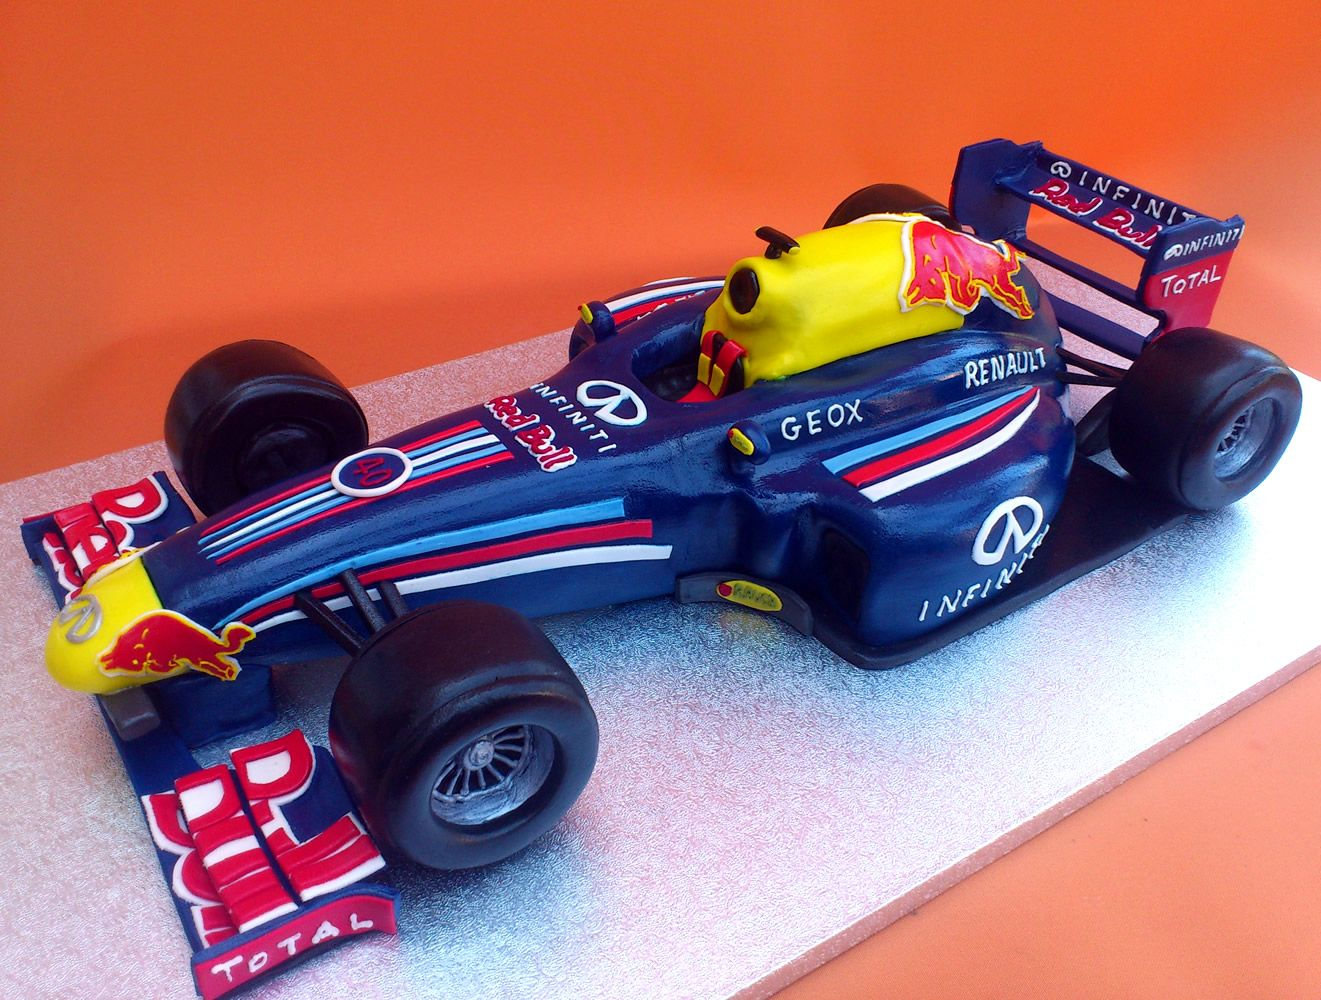 f1 car cake template - f1 car cake template image collections template design ideas